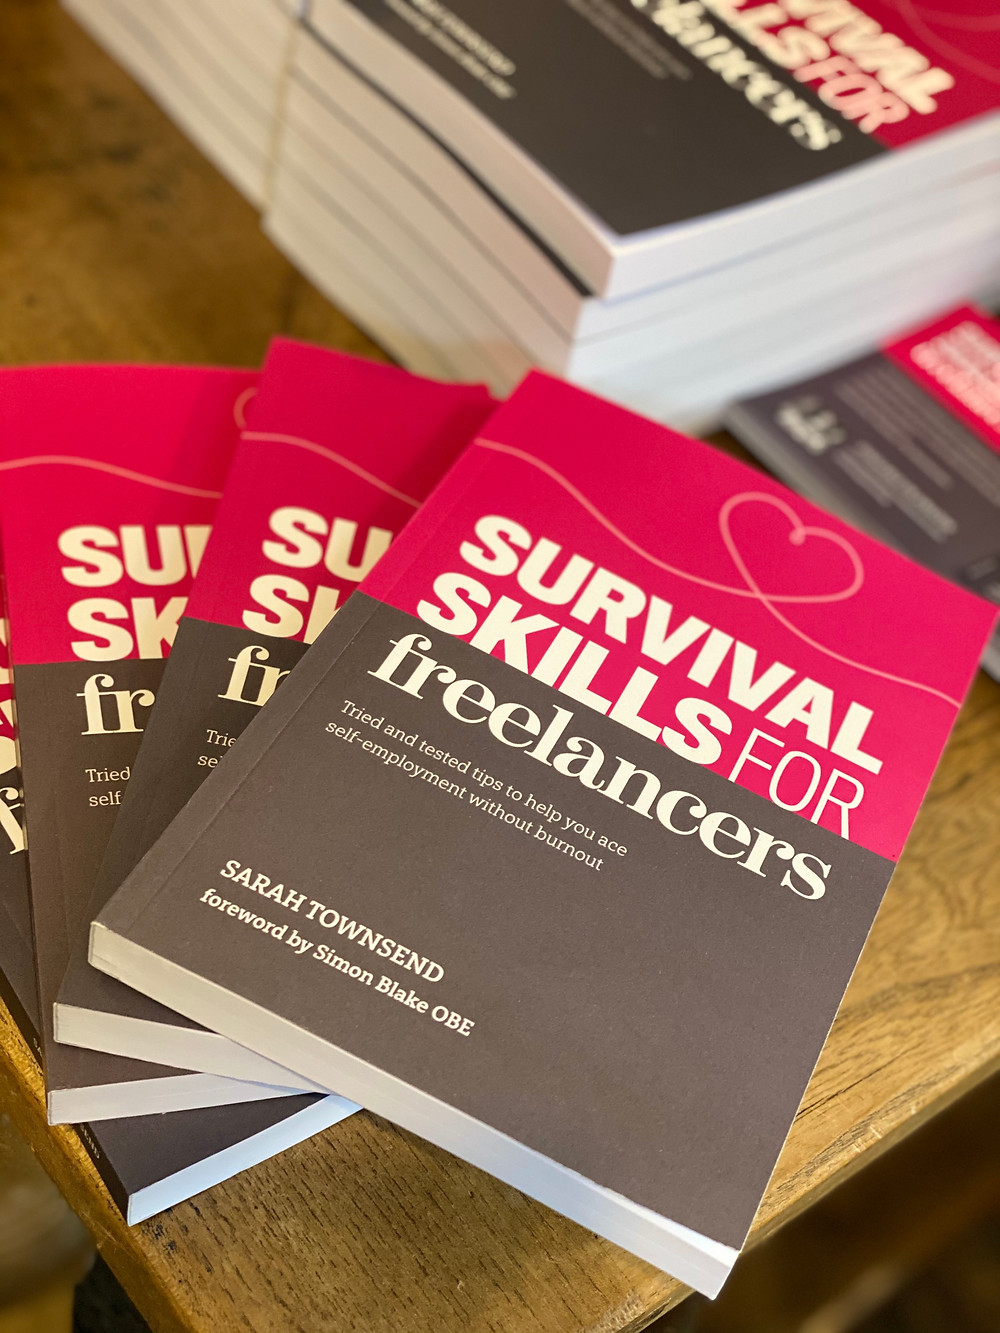 A book called Survival Skills for Freelancers by Sarah Townsend